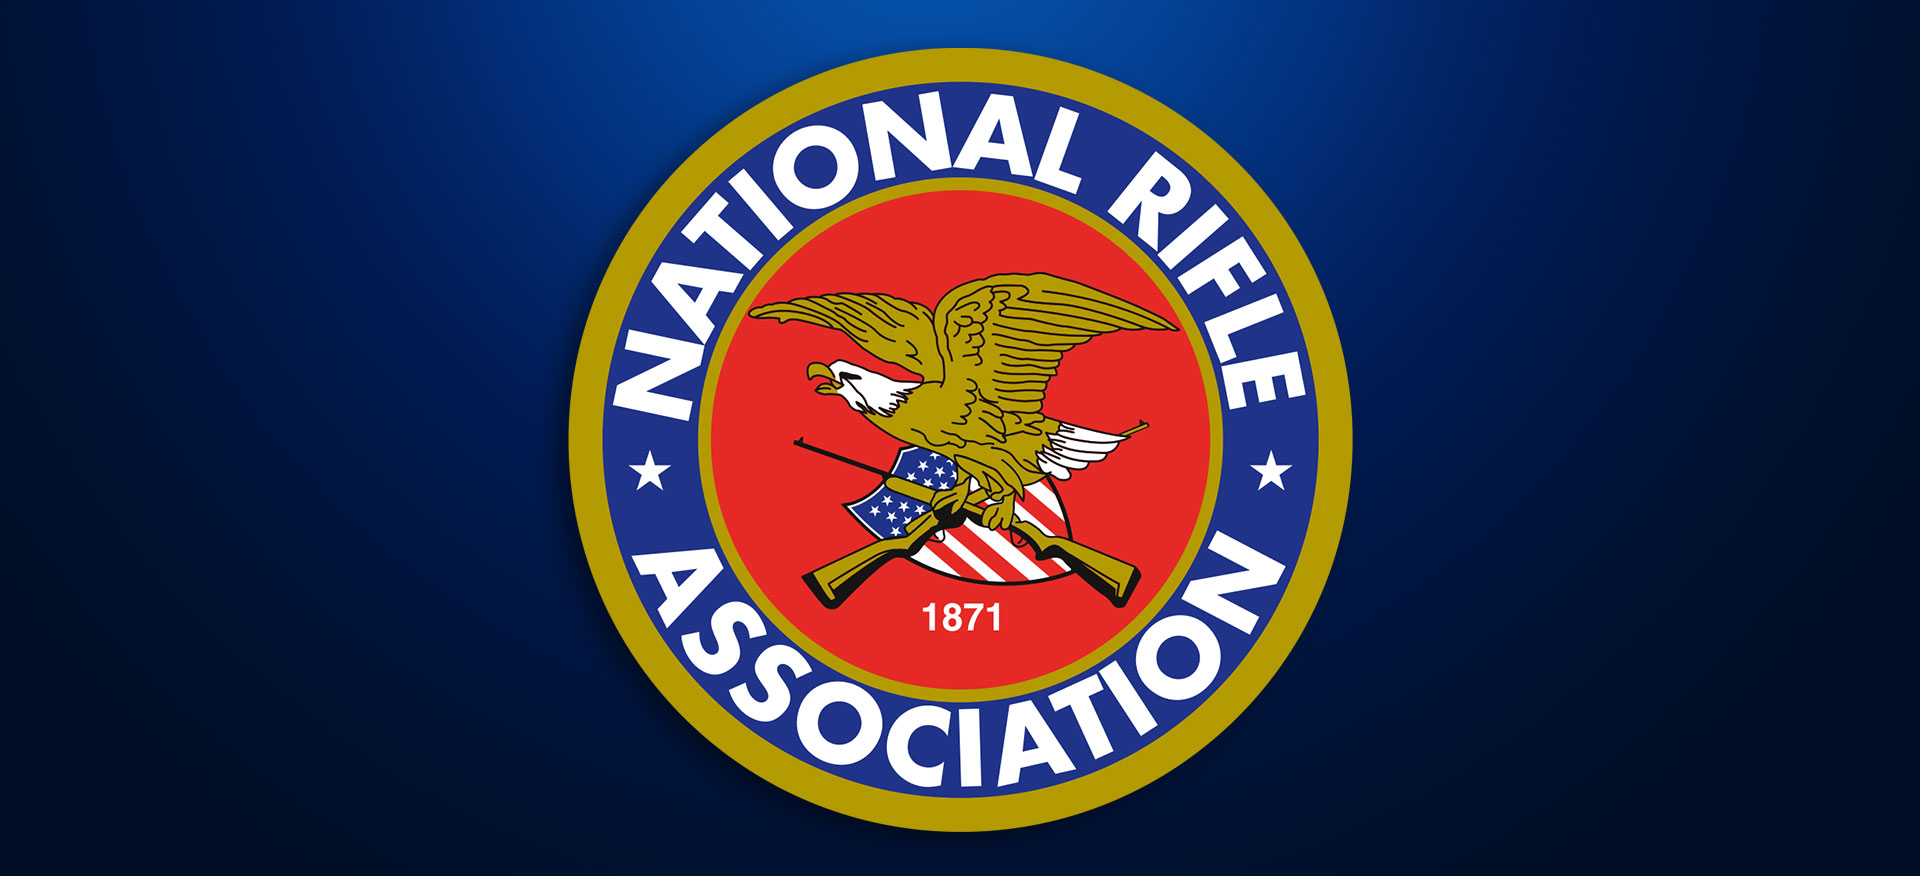 the nra The nra, of course, has real clout like many other groups, it lobbies in washington and state capitals, buys ads and deploys activists during elections, and maintains a ratings system that grades elected officials and candidates on their support for its goals.